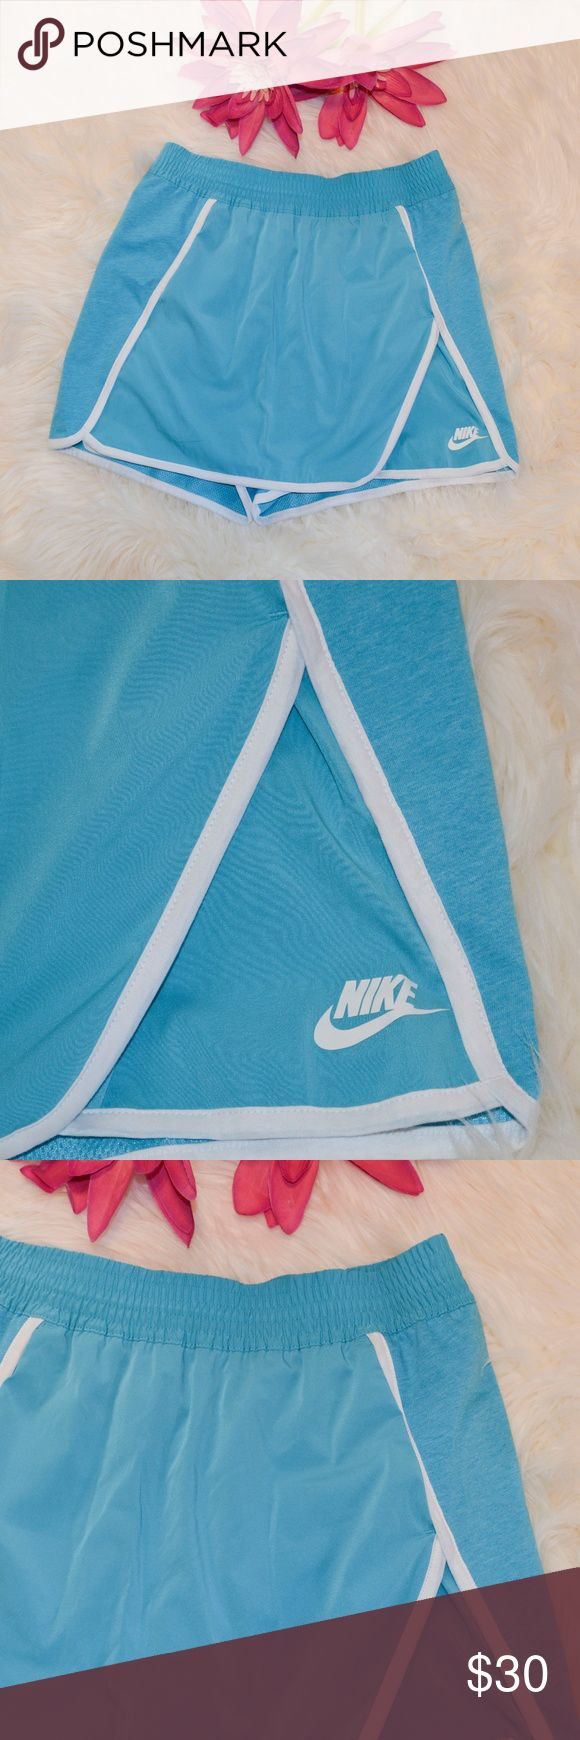 """NWT Nike Heathered Blue Court Athletic Skort Nike heathered blue court athletic/tennis short. Layered skirted front and short back. Elastic smocked waist. 2 pockets. Partially lined in mesh for breathability.  Size: S  Measurements Laying Flat -  Waist: 14 1/2"""" Hips: 18 1/2"""" Inseam: 2 1/2"""" Length: 14 1/2""""  Material: Face Body - 100% Cotton / Back of Body - 100% Polyester / Overlay - 91% Polyester & 9% Spandex Nike Shorts Skorts"""